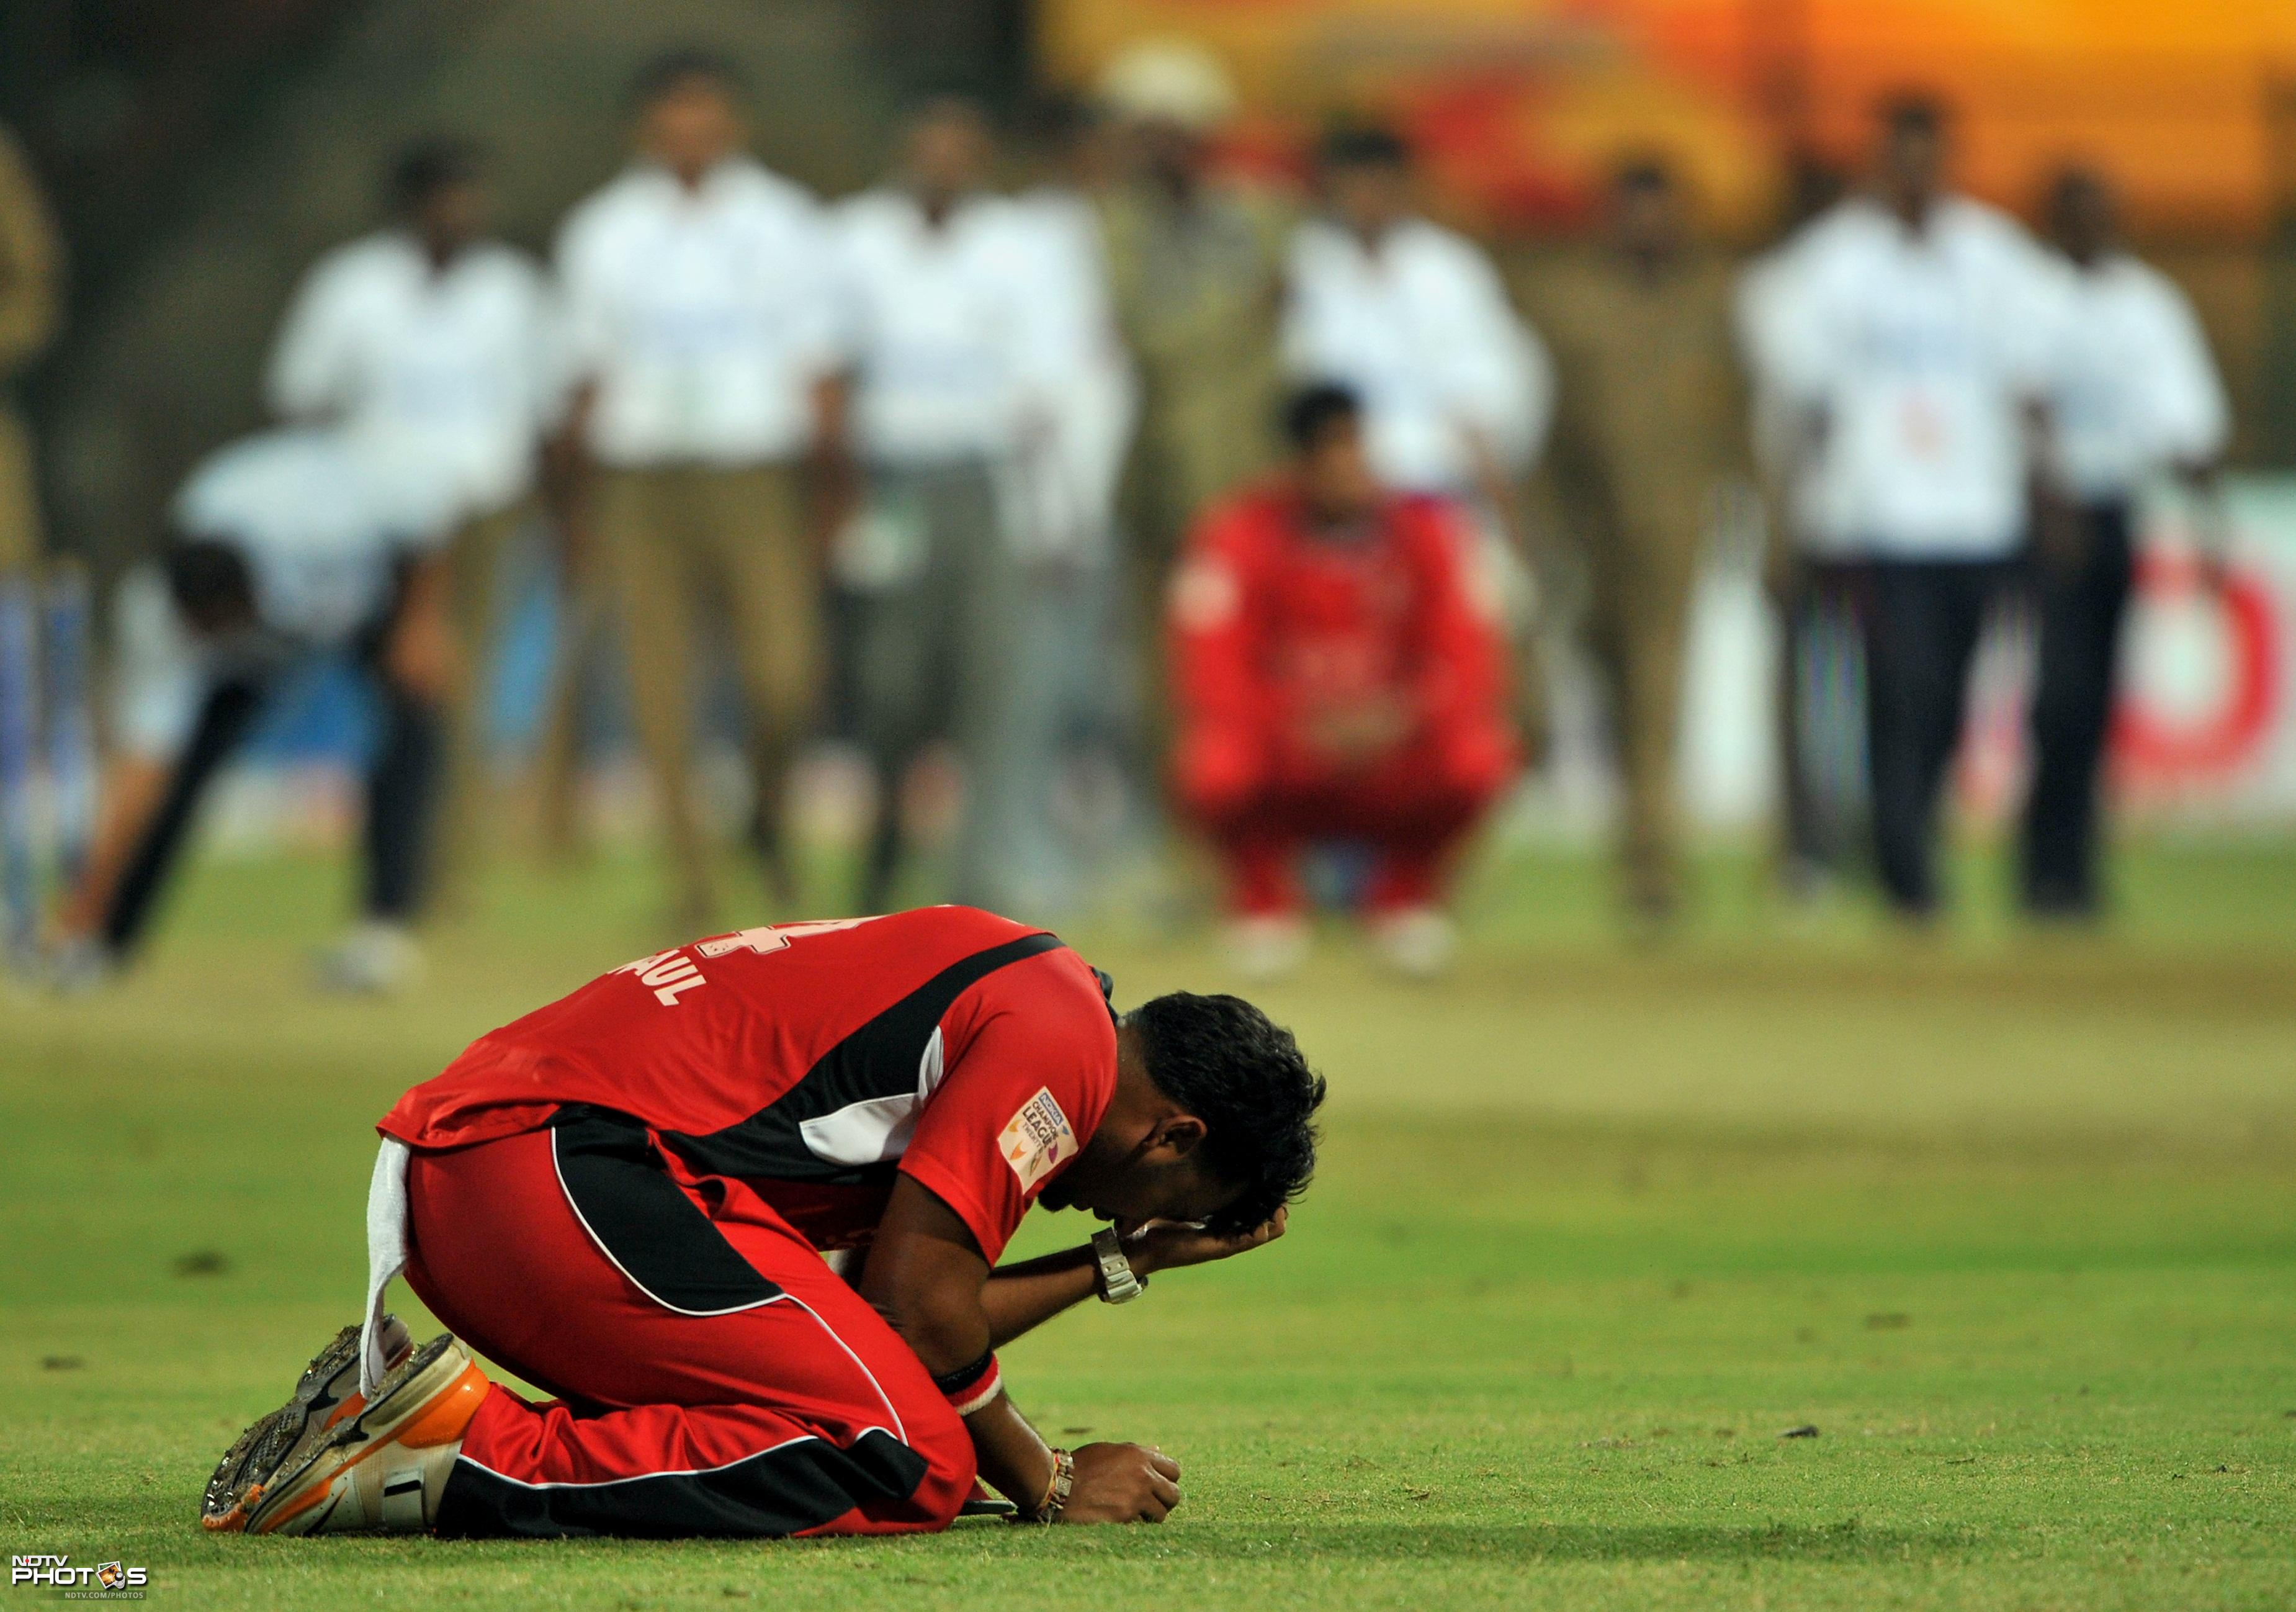 A dejected Ravi Rampaul of Trinidad and Tobago after losing against Mumbai Indians during the Champions League Twenty20 League Group A match at the M. Chinnaswamy Stadium in Bangalore. (AFP Photo)